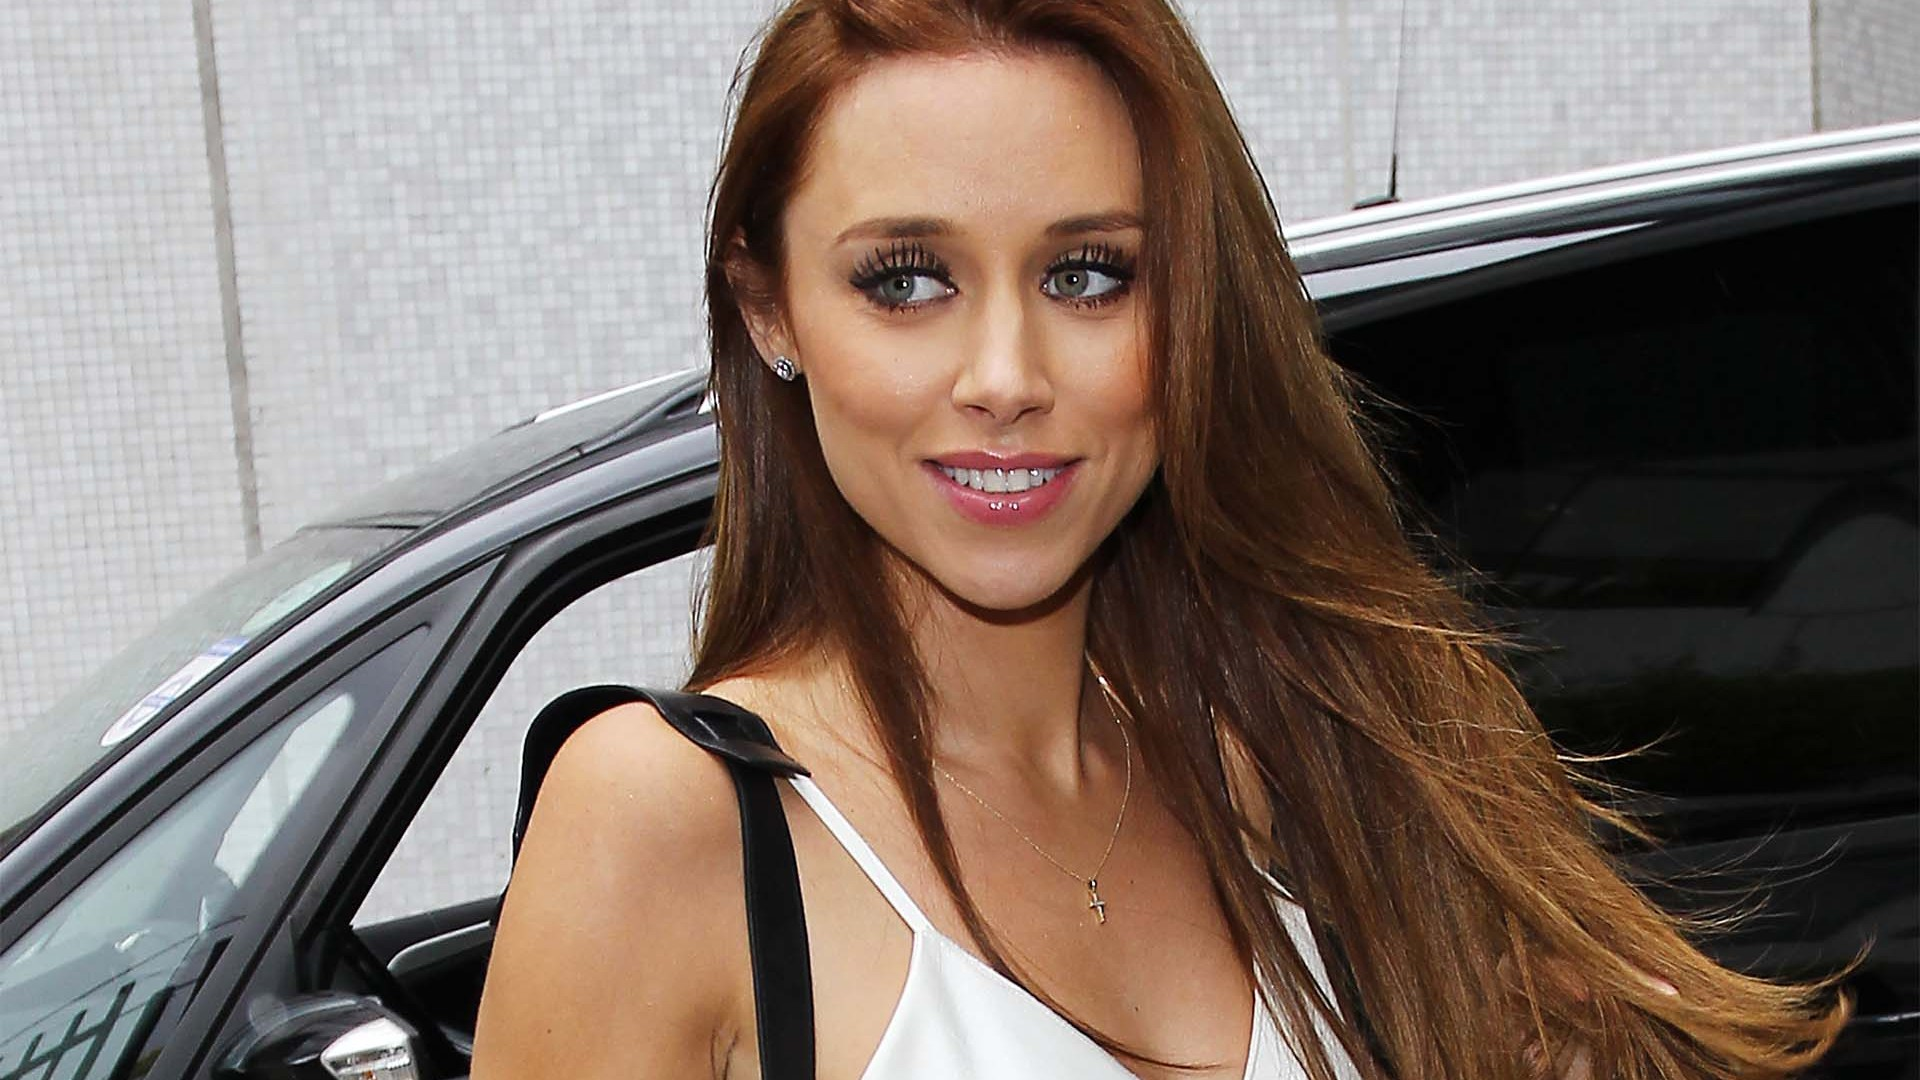 Hacked Una Healy nude photos 2019